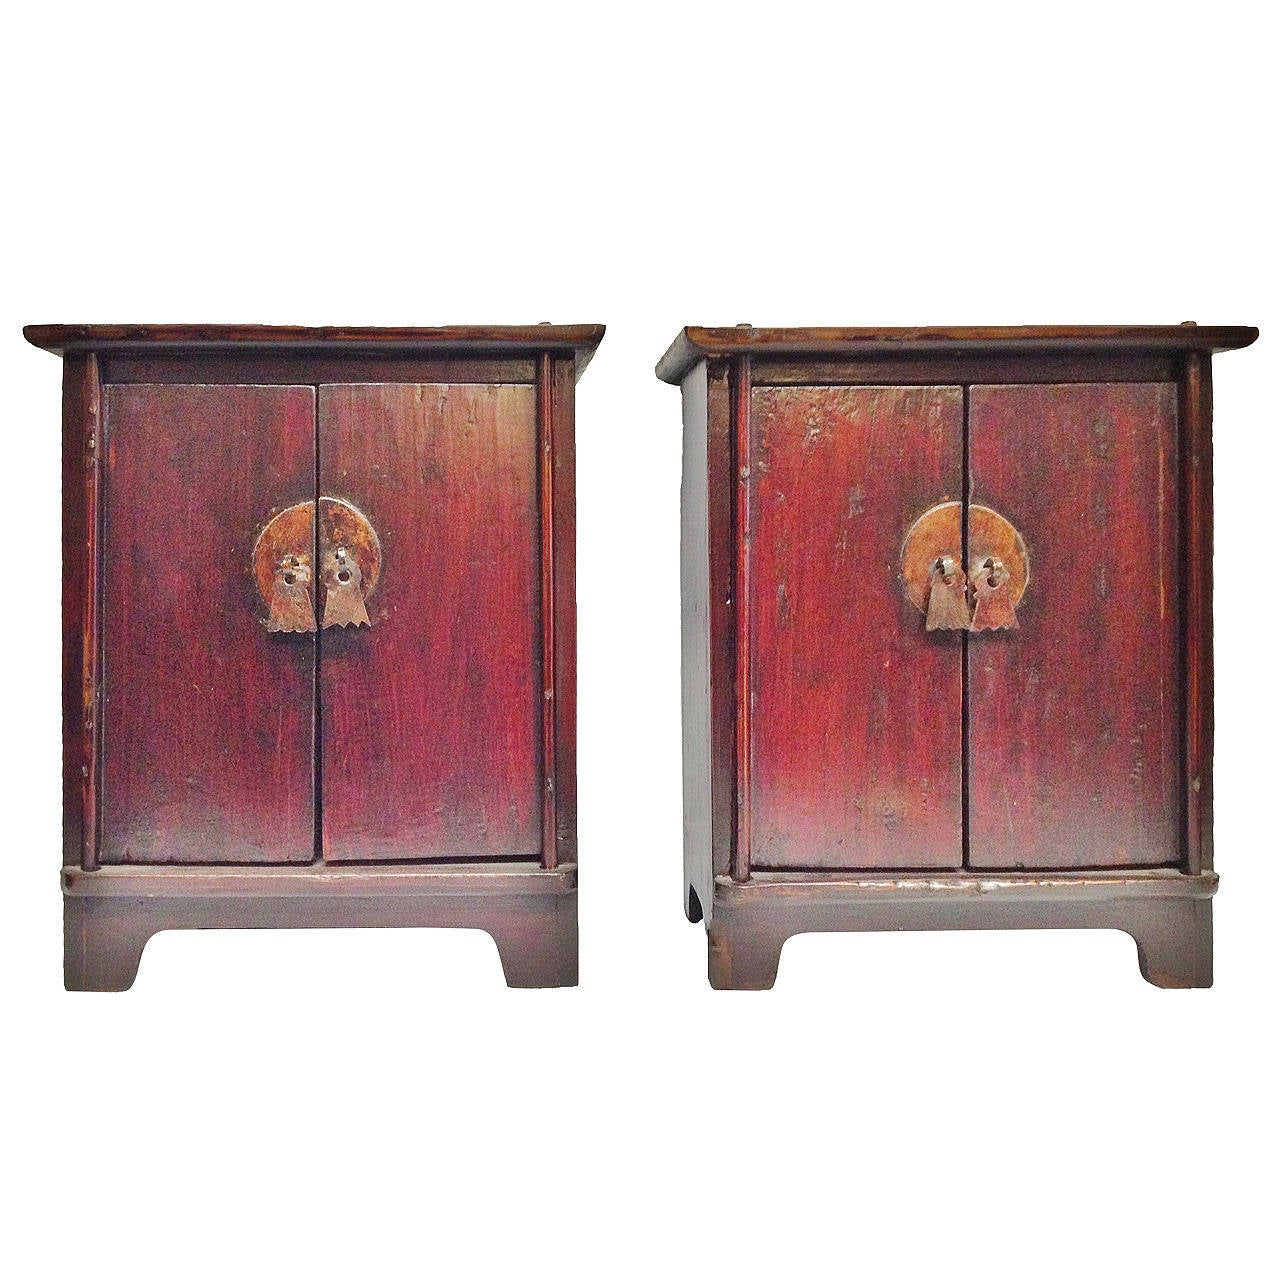 2317172 for Antique chinese furniture styles